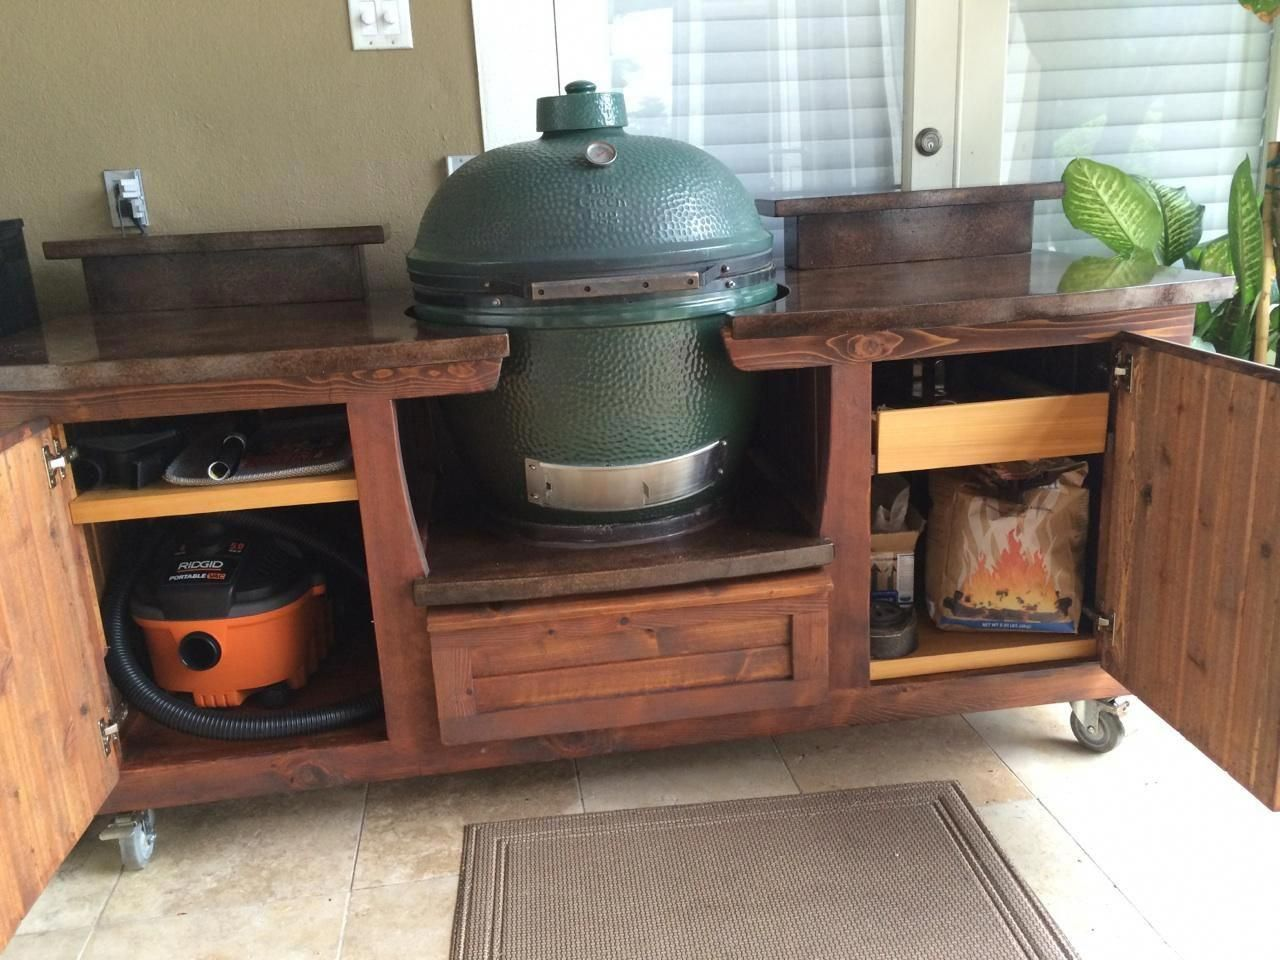 All About Outdoor Kitchen Ideas On A Budget Diy Covered Tropical Layout Small Rus With Images Big Green Egg Table Plans Outdoor Kitchen Design Simple Outdoor Kitchen